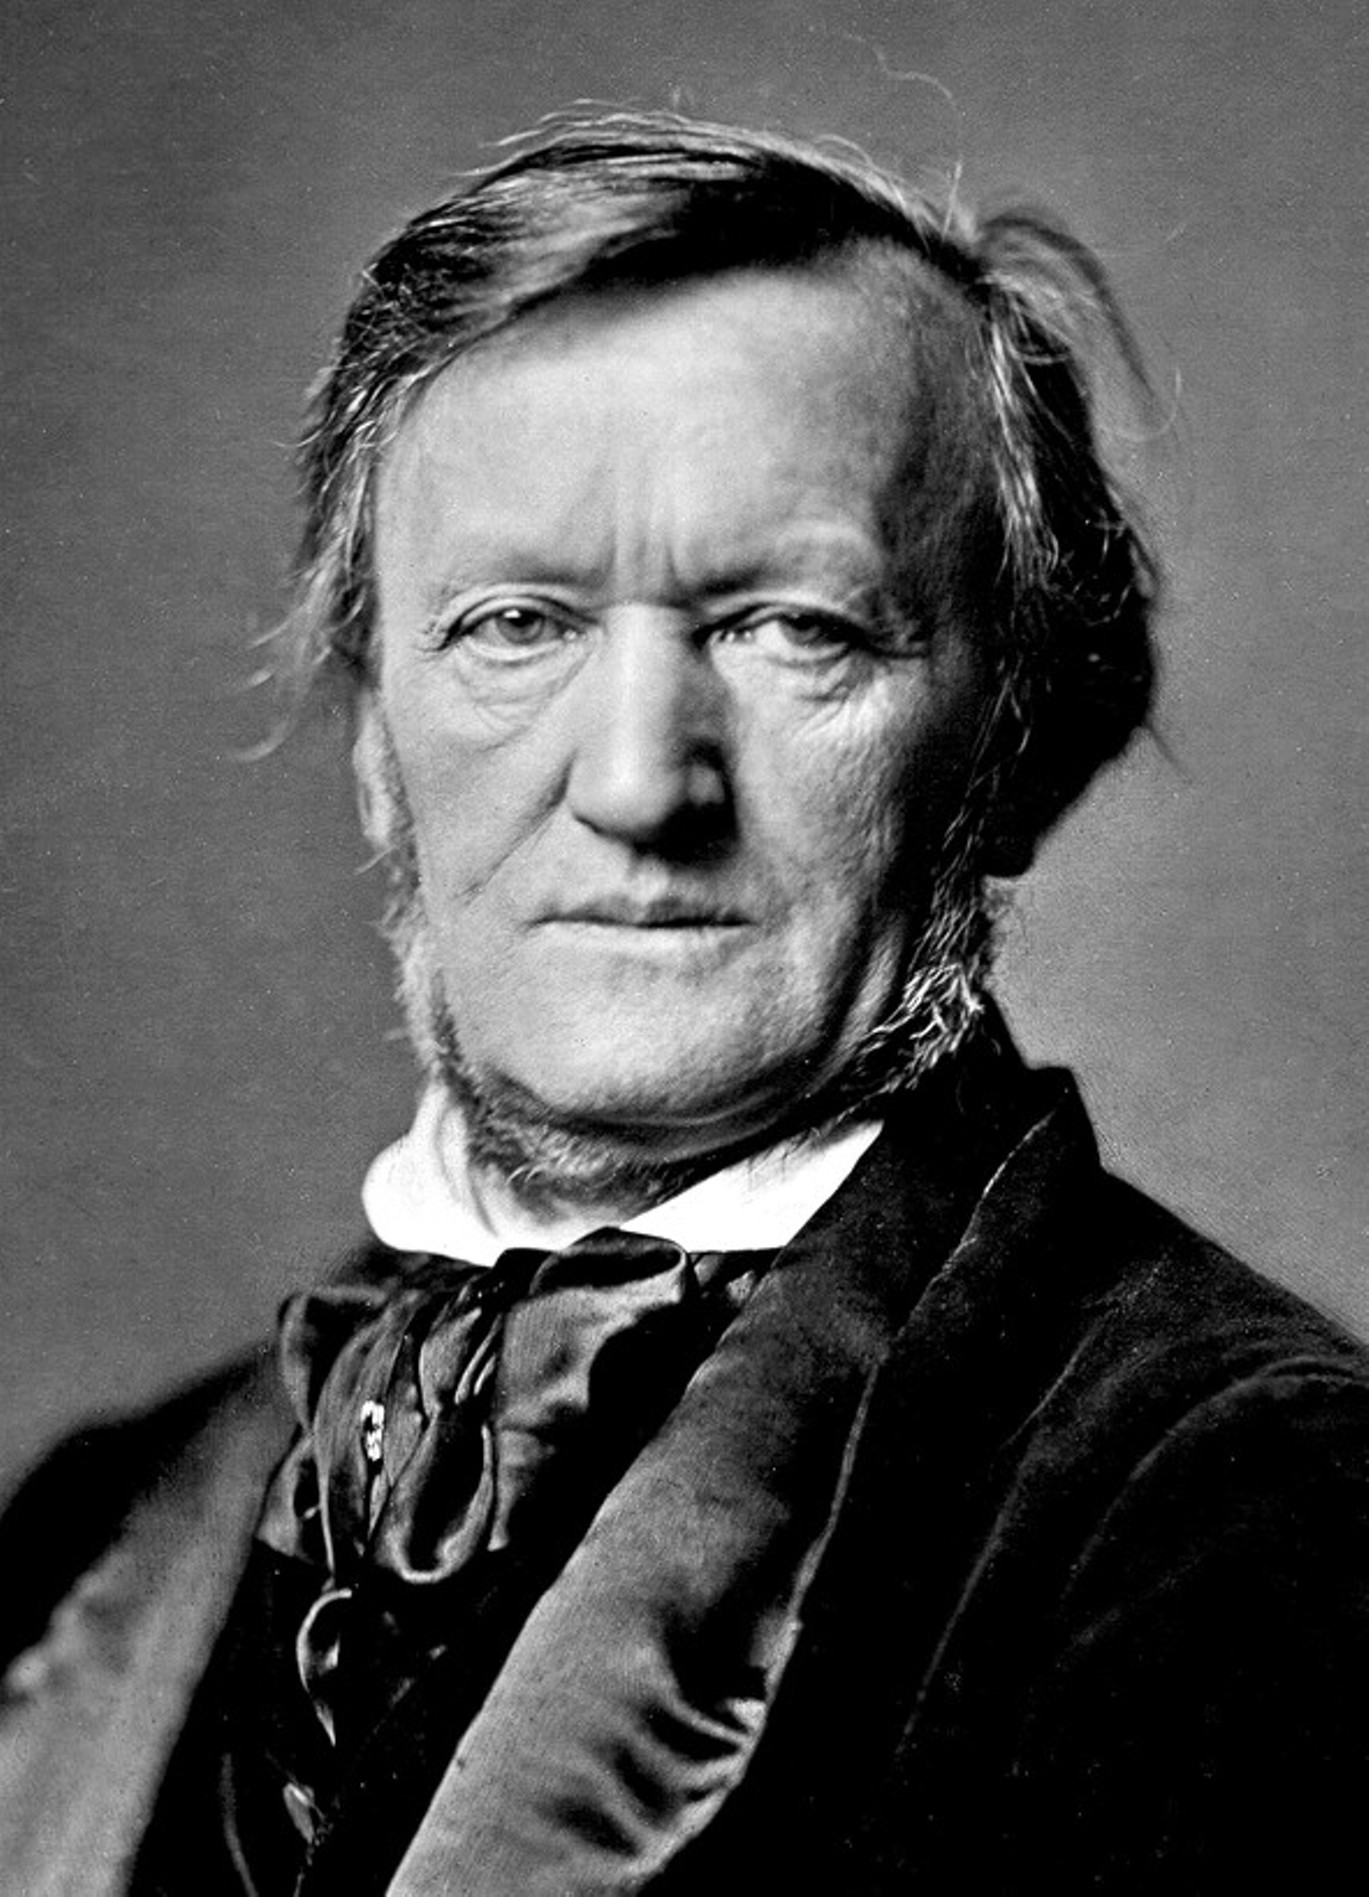 http://upload.wikimedia.org/wikipedia/commons/9/9d/RichardWagner.jpg